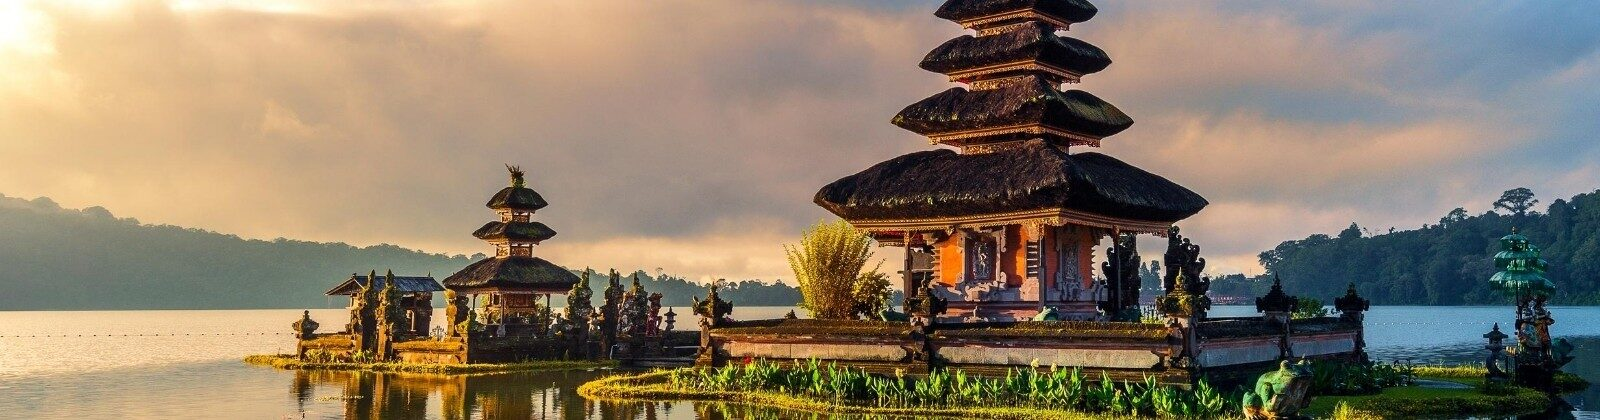 bali featured image temple on water